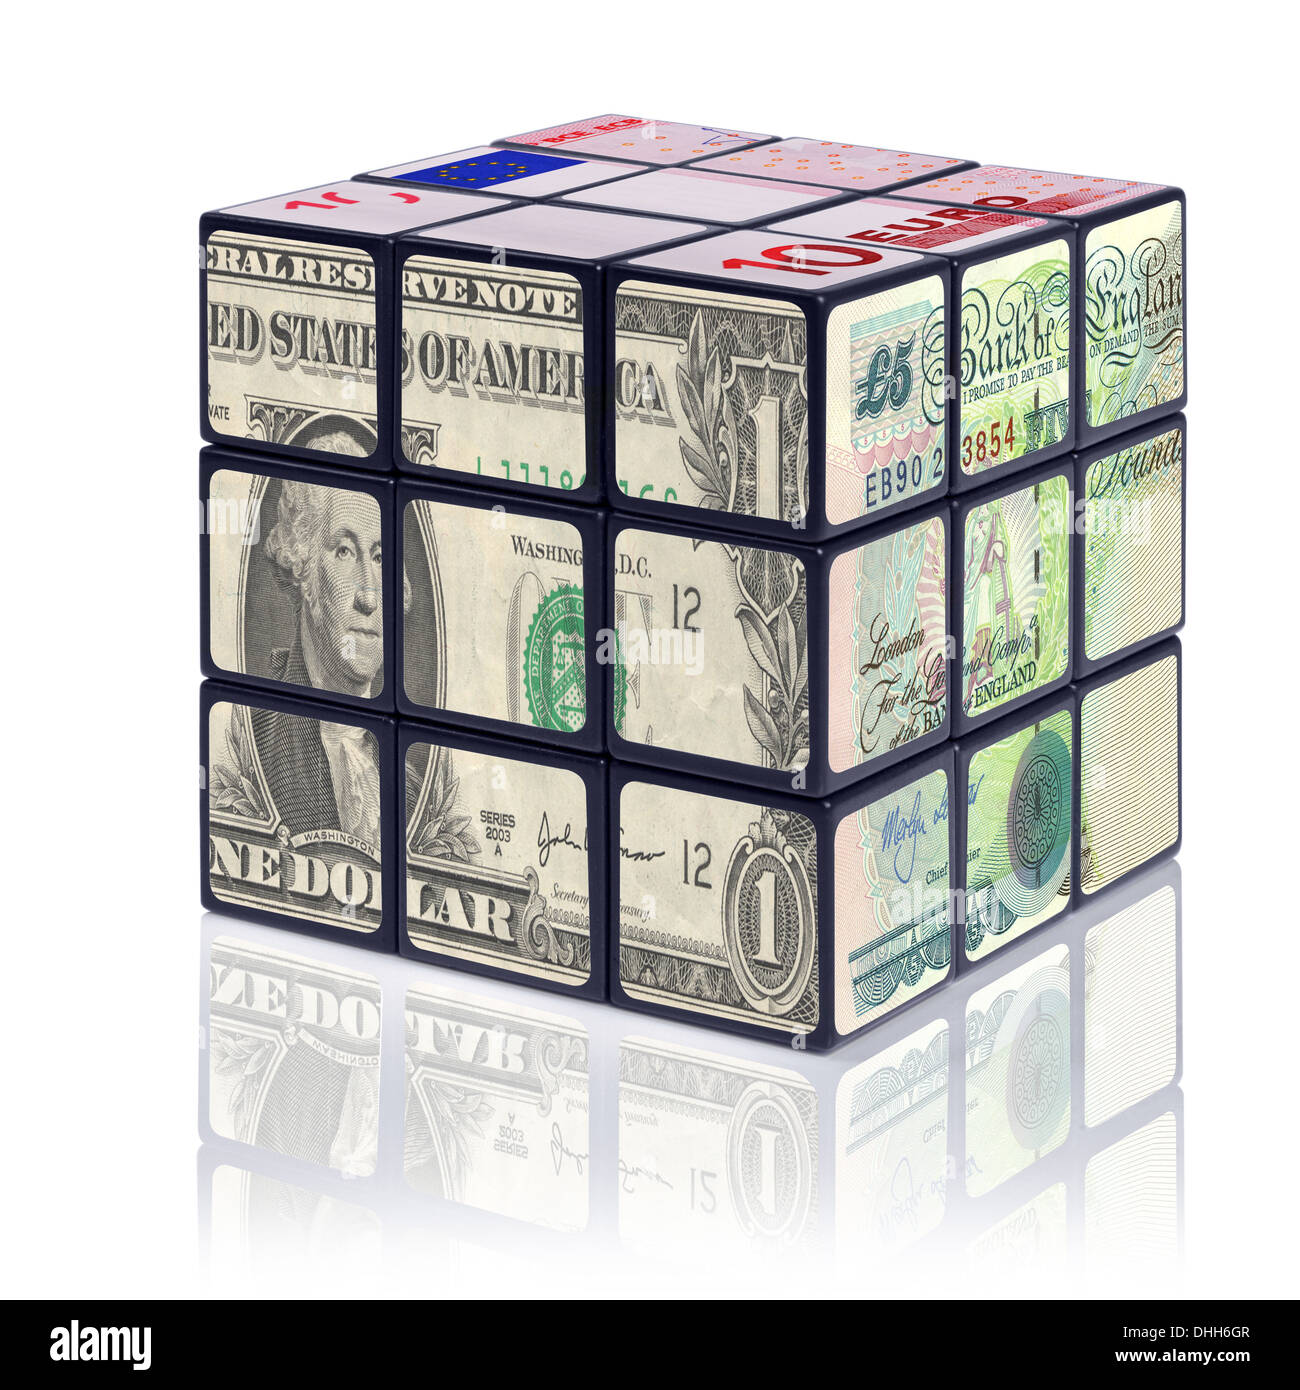 A puzzle cube with banknotes on each side featuring - American Dollar, British Pound and the Euro. - Stock Image